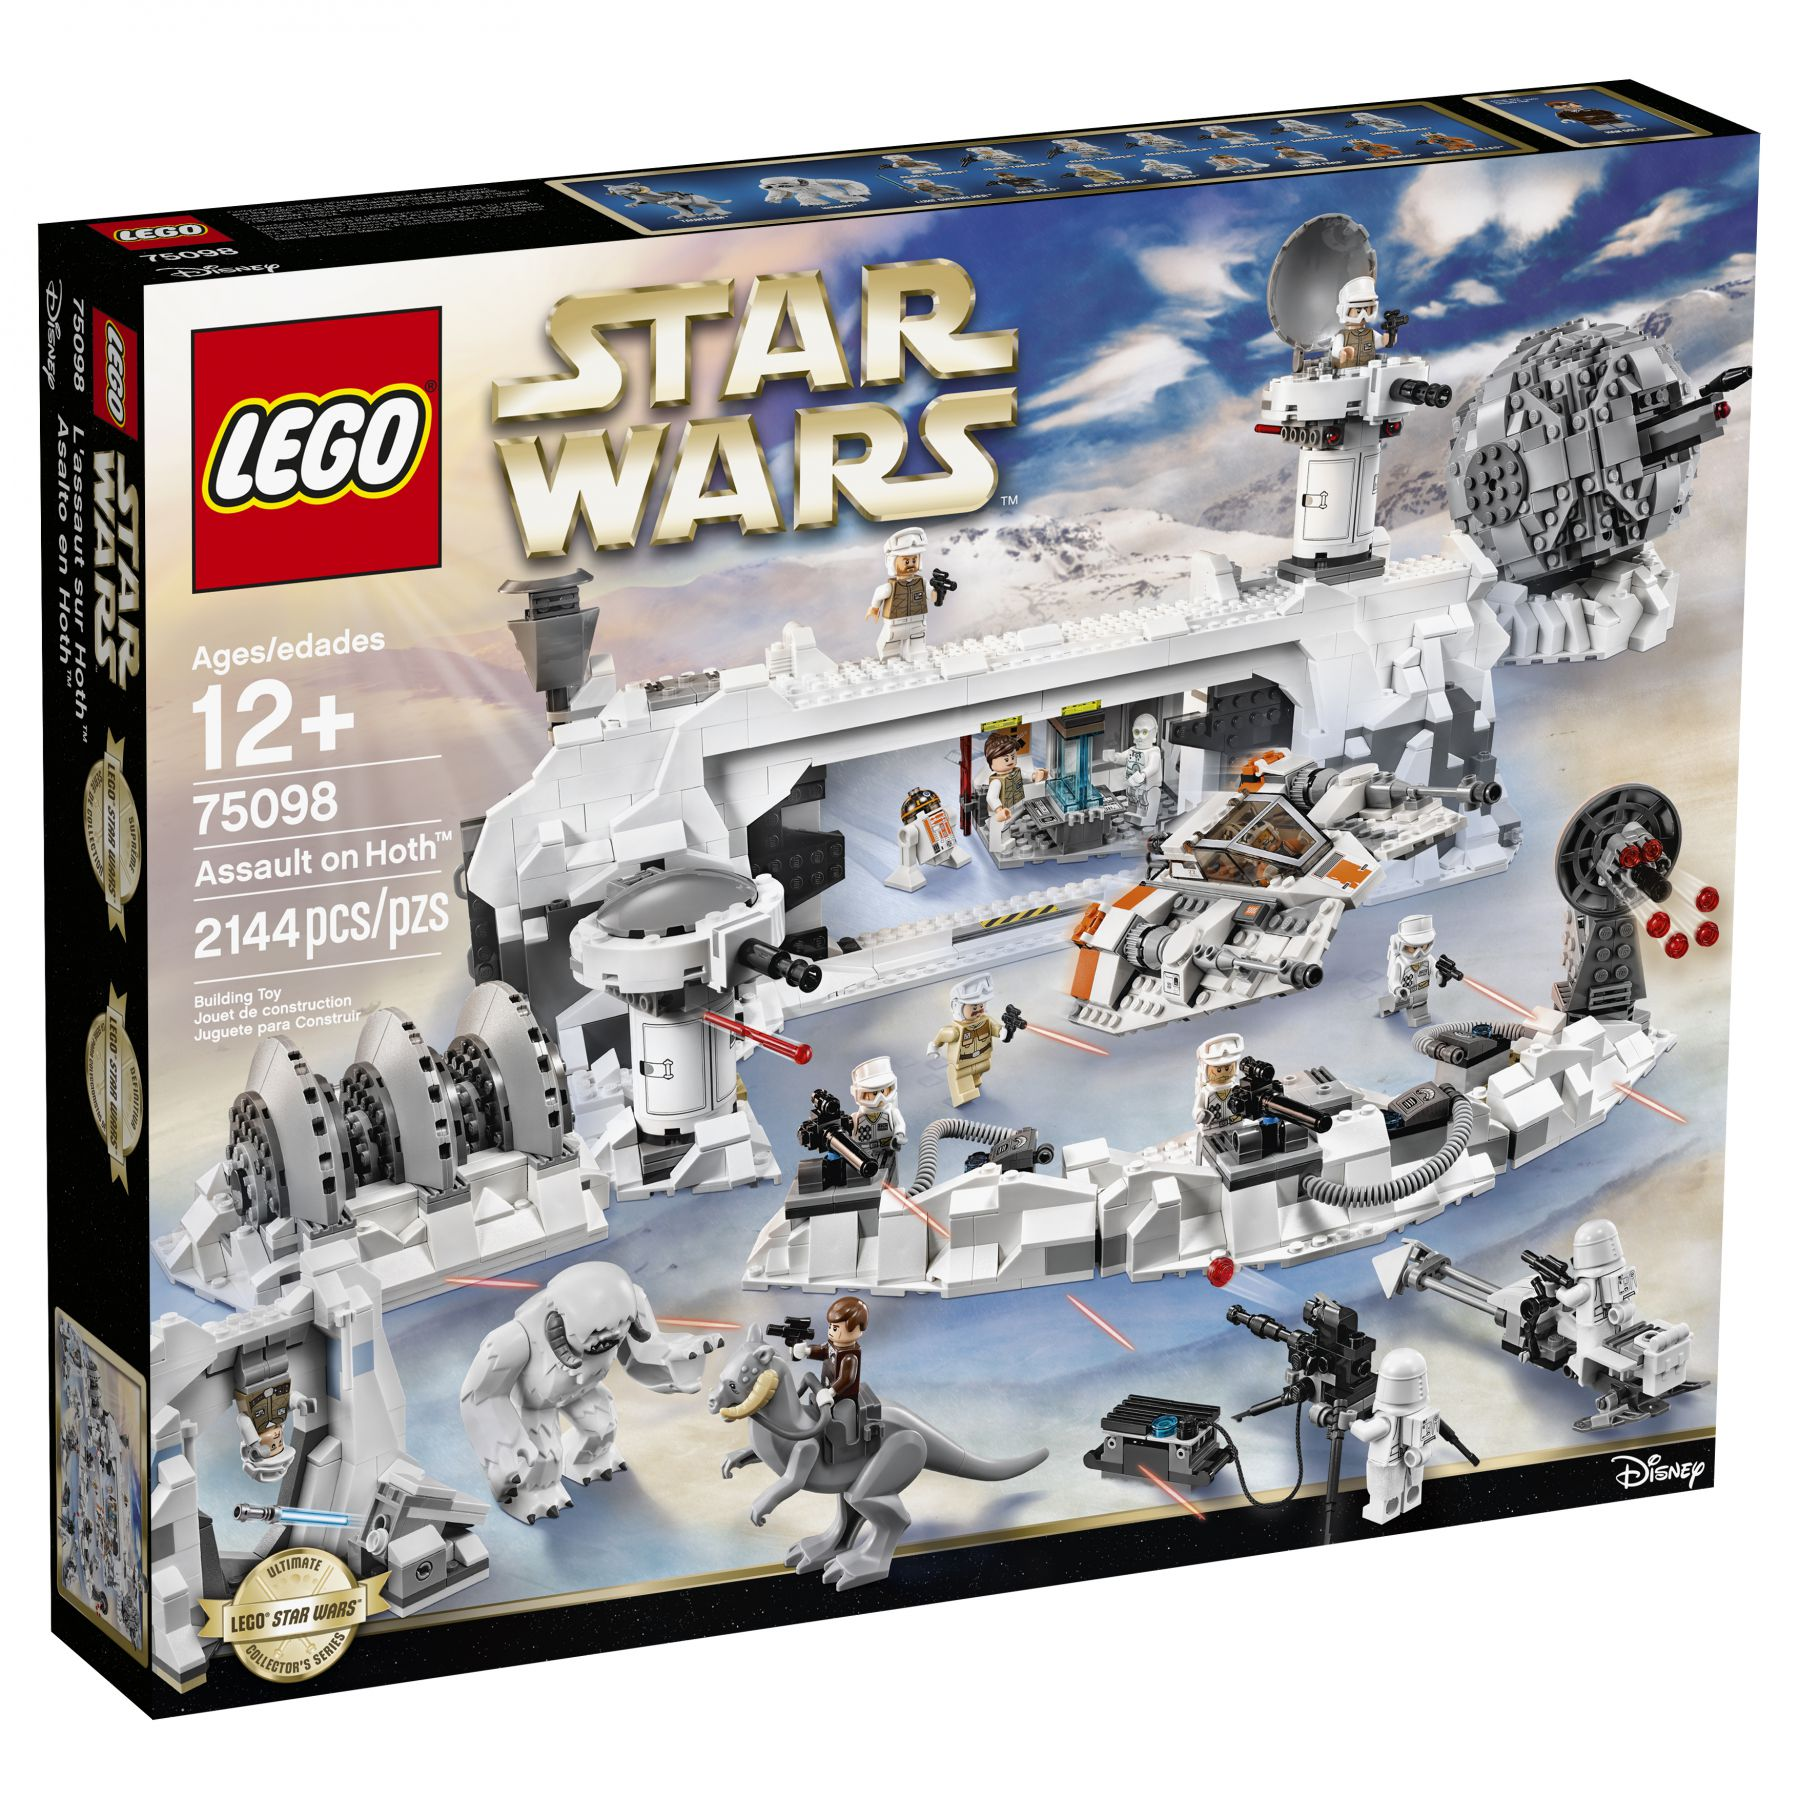 LEGO Star Wars 75098 Angriff auf Hoth™ LEGO-75098-Assault-on-Hoth-box1.jpg